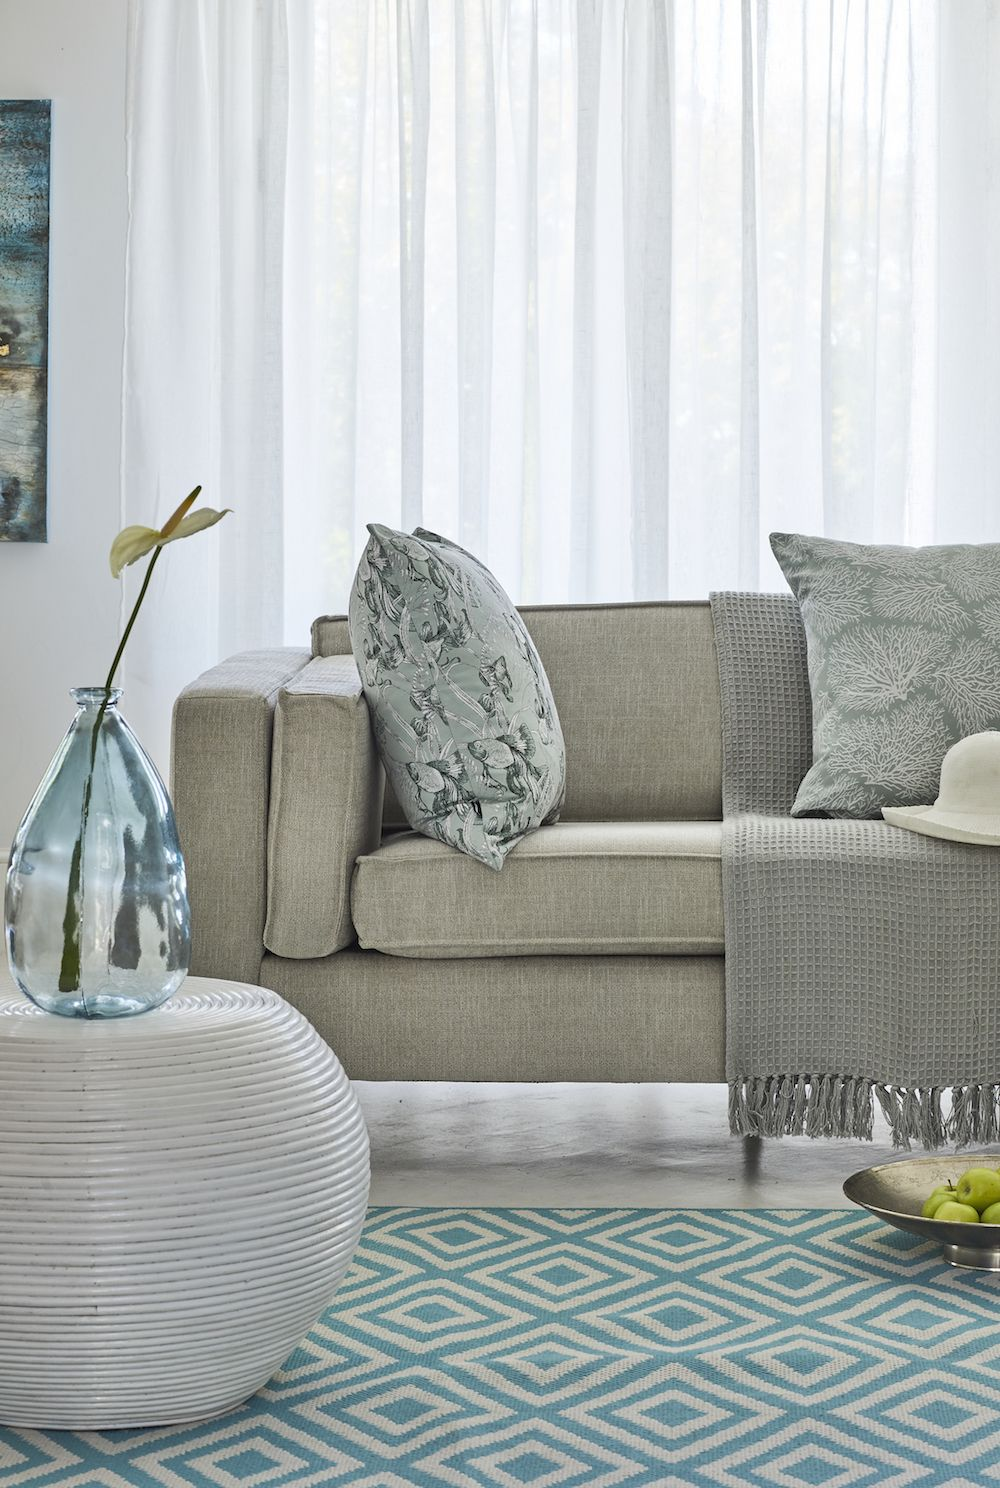 Handmade and hand-upholstered by skilled South African ...